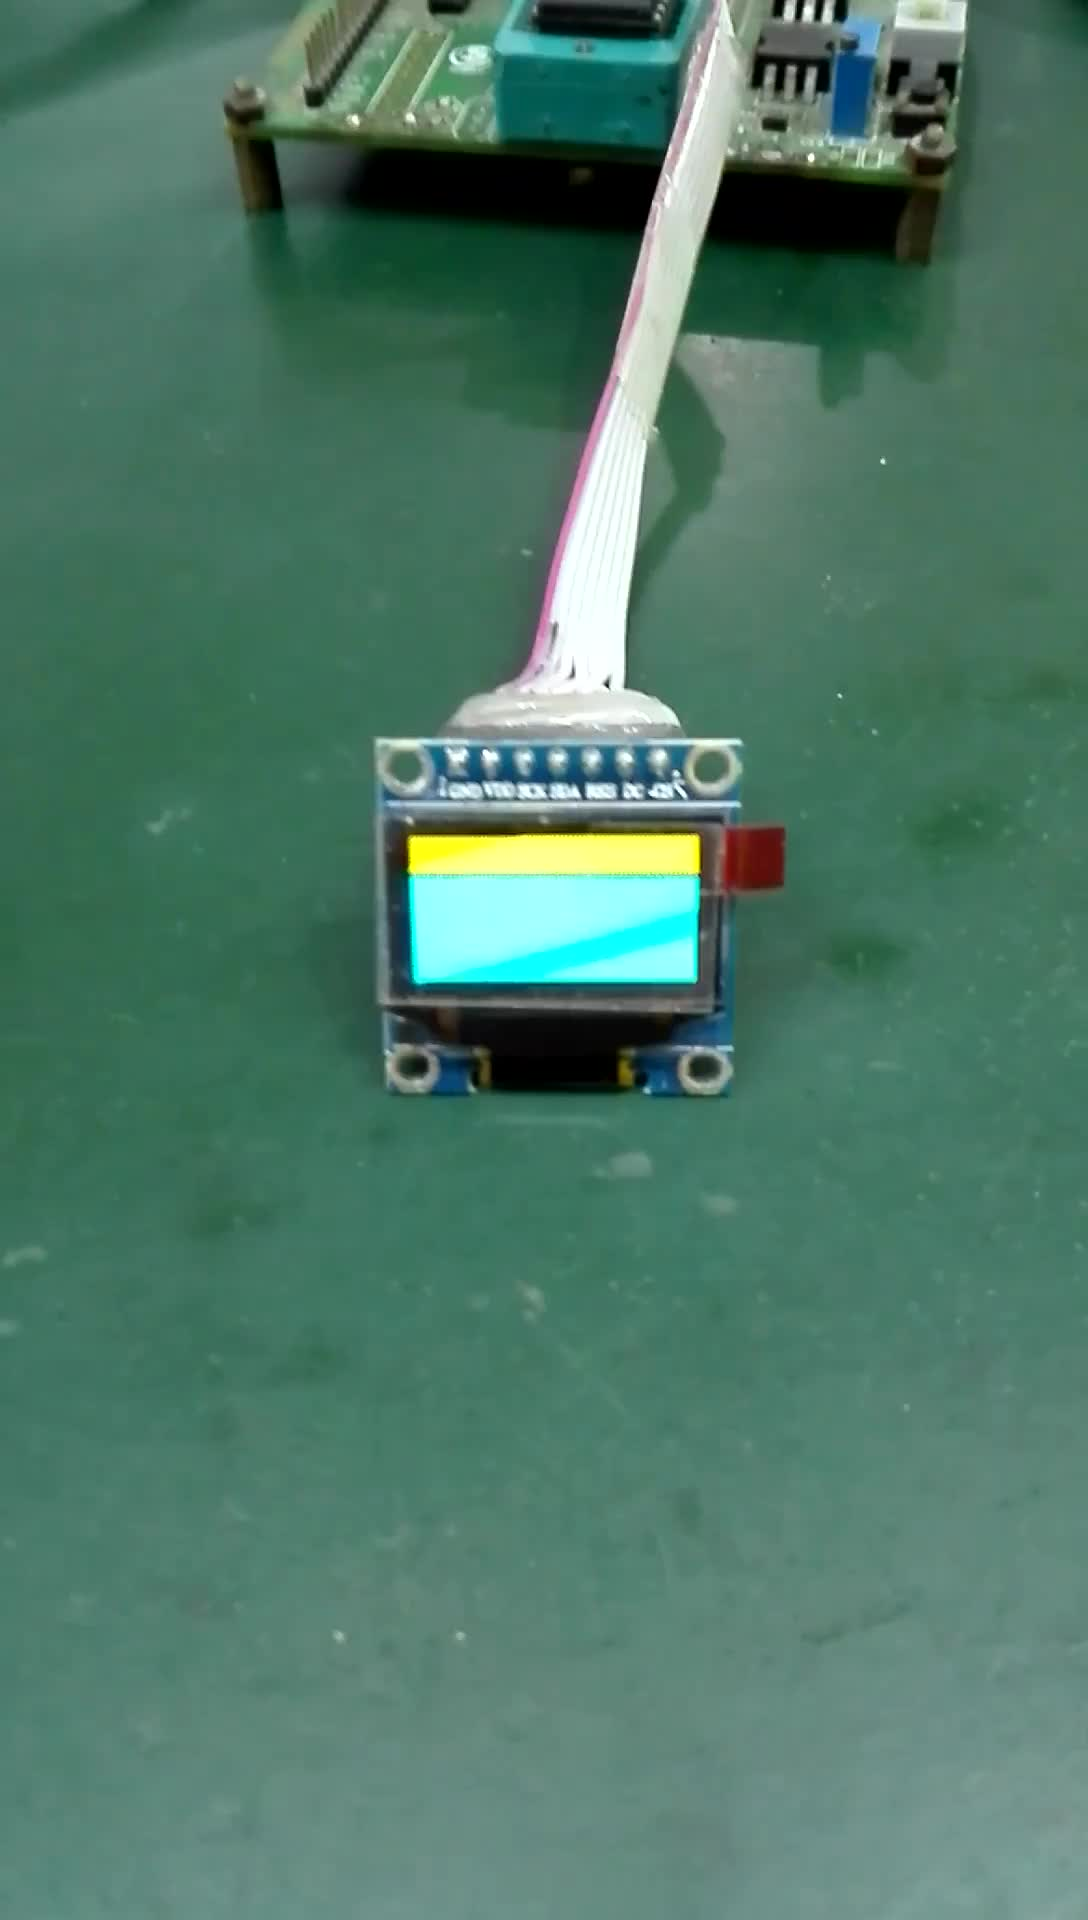 Taidacent UG-9664HDDAG01 Full Color SSD1331 COG Parallela LCD Da 0.95 Pollici 23 Pin SPI Passivo Matrix OLED Modulo Display